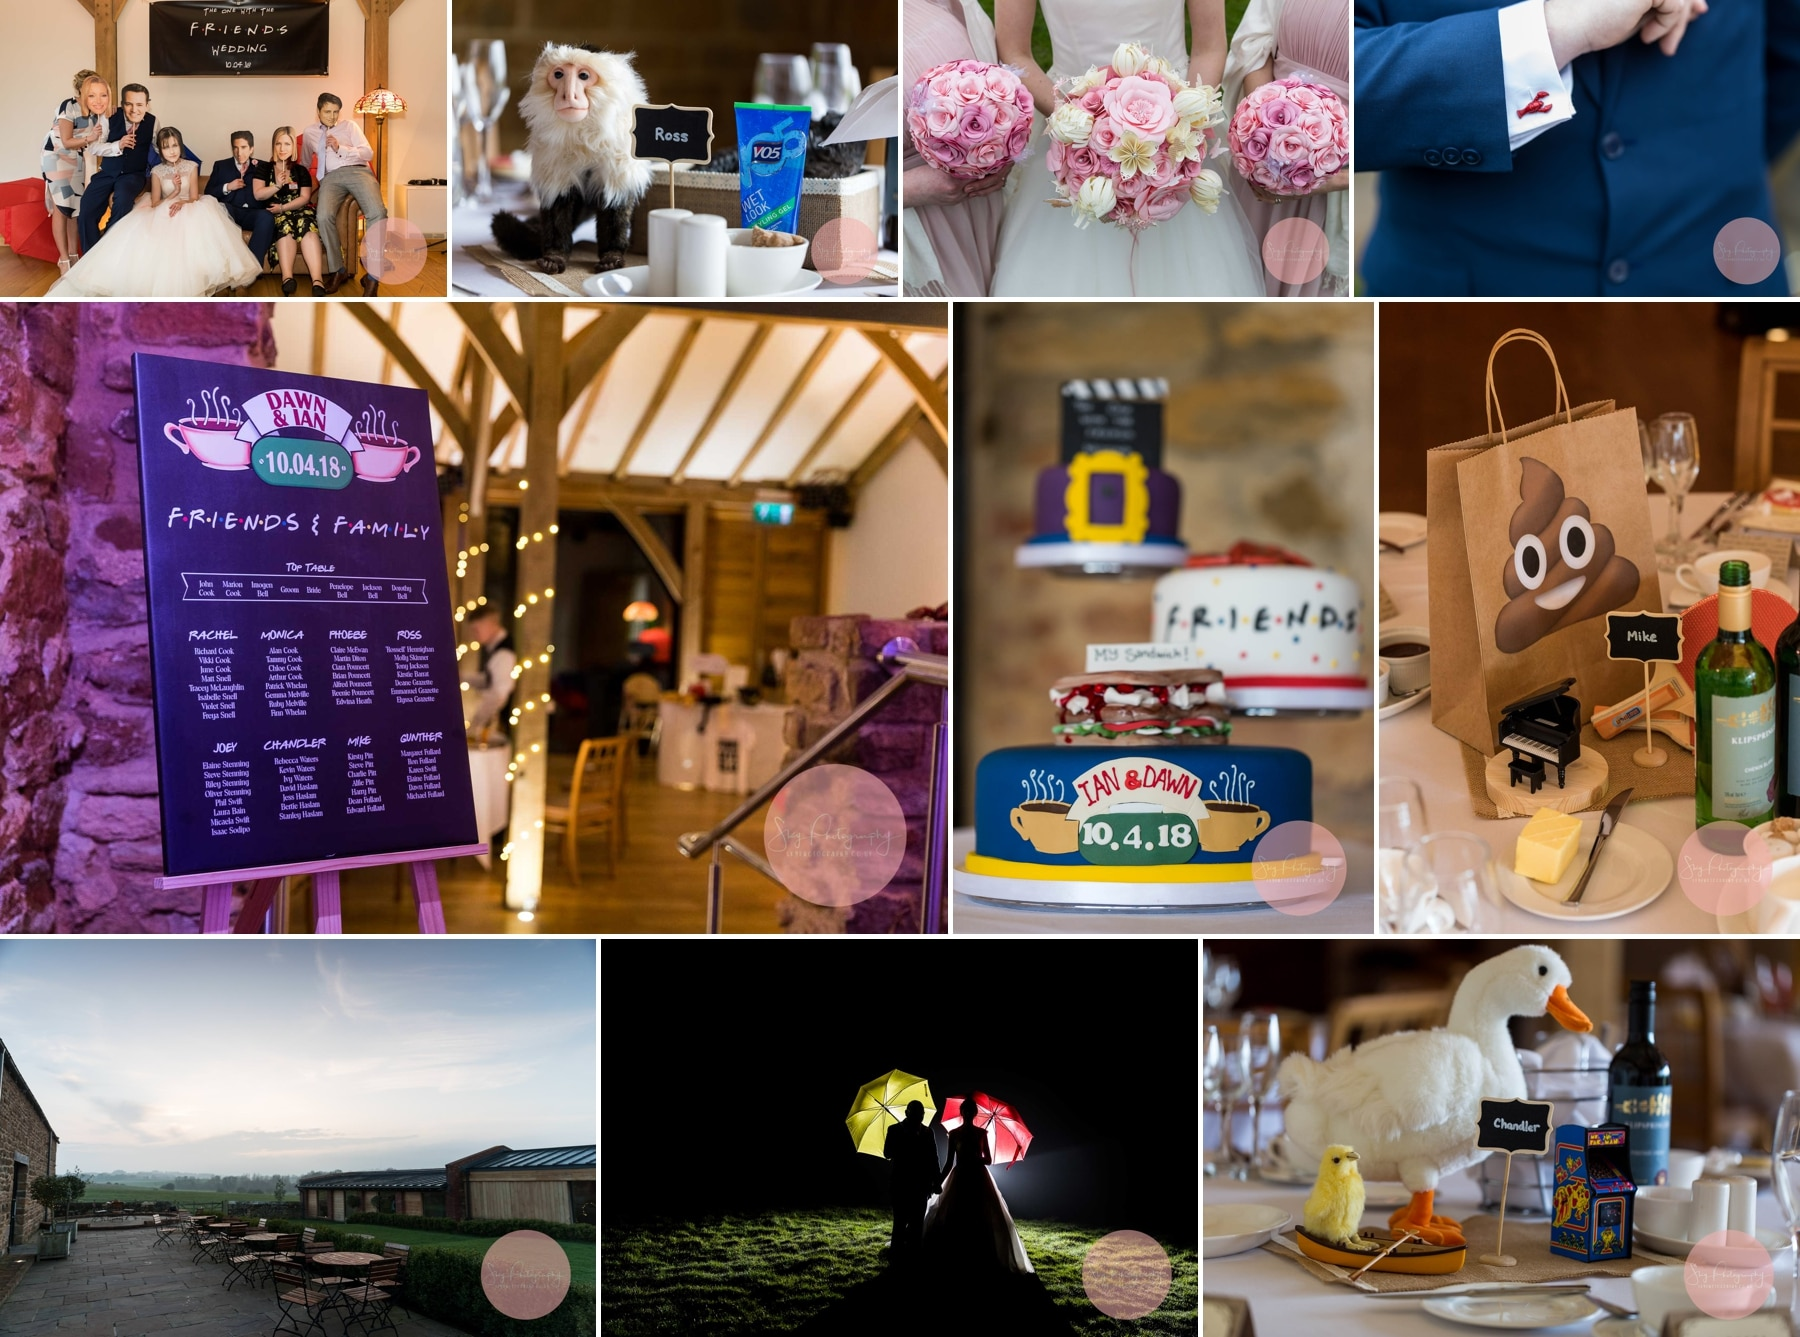 Friends themed wedding at Dodford Manor